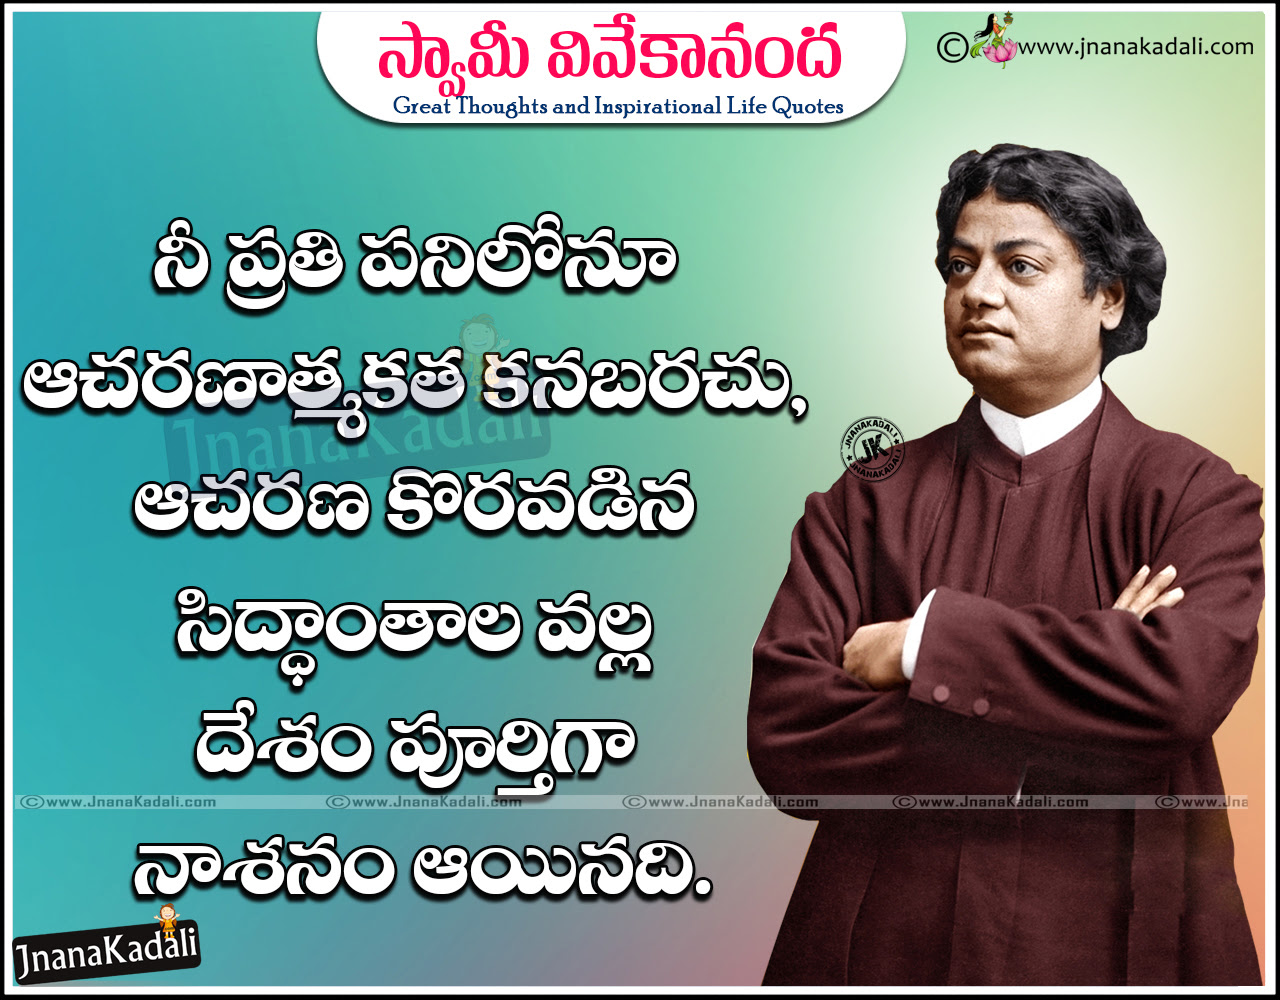 Swami Vivekananda Quotes Wallpapers In Kannada Swami Vivekananda